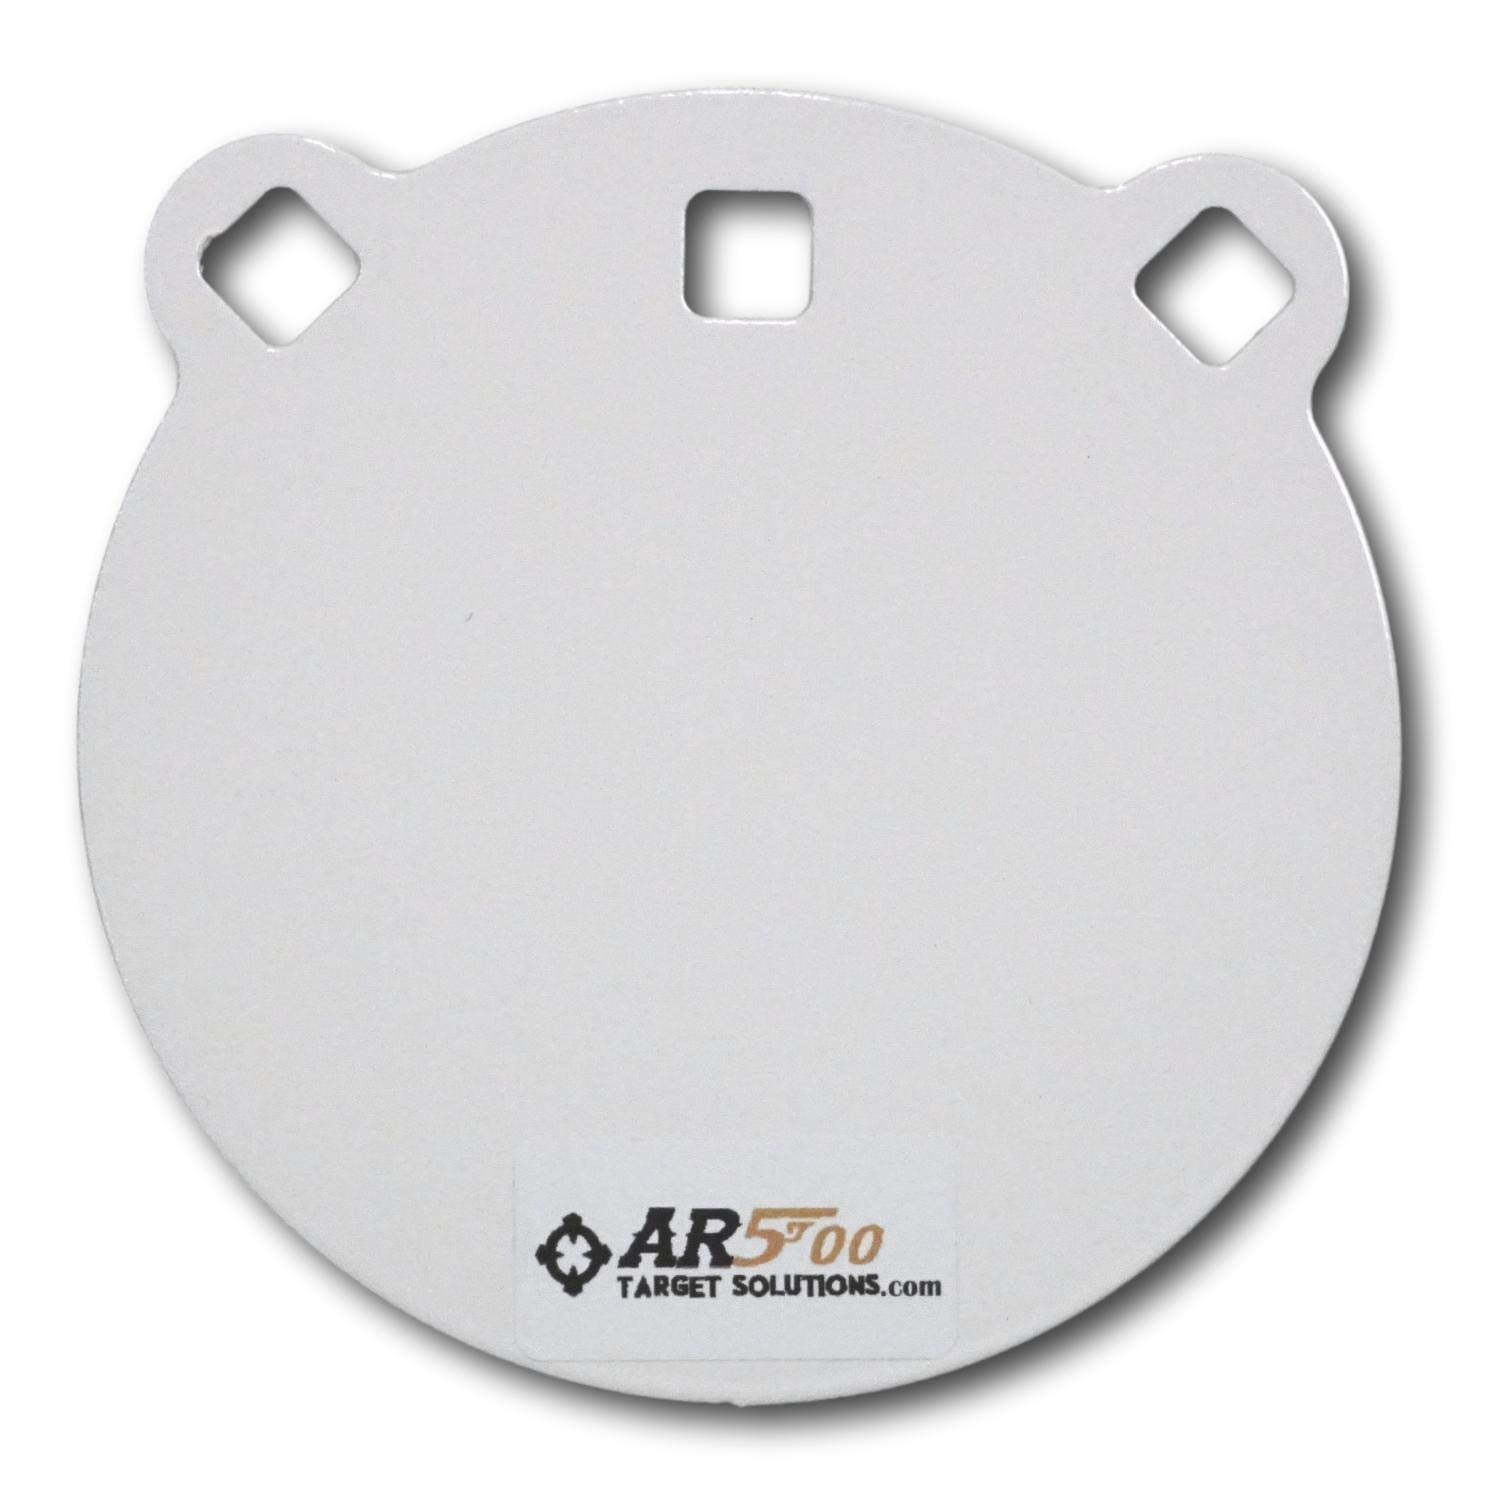 Ar500 Target Solutions- Quality 3/8, 1/2 Thick AR500 Steel Targets- Laser Cut Powder Coated Made in USA (6'', 3/8)